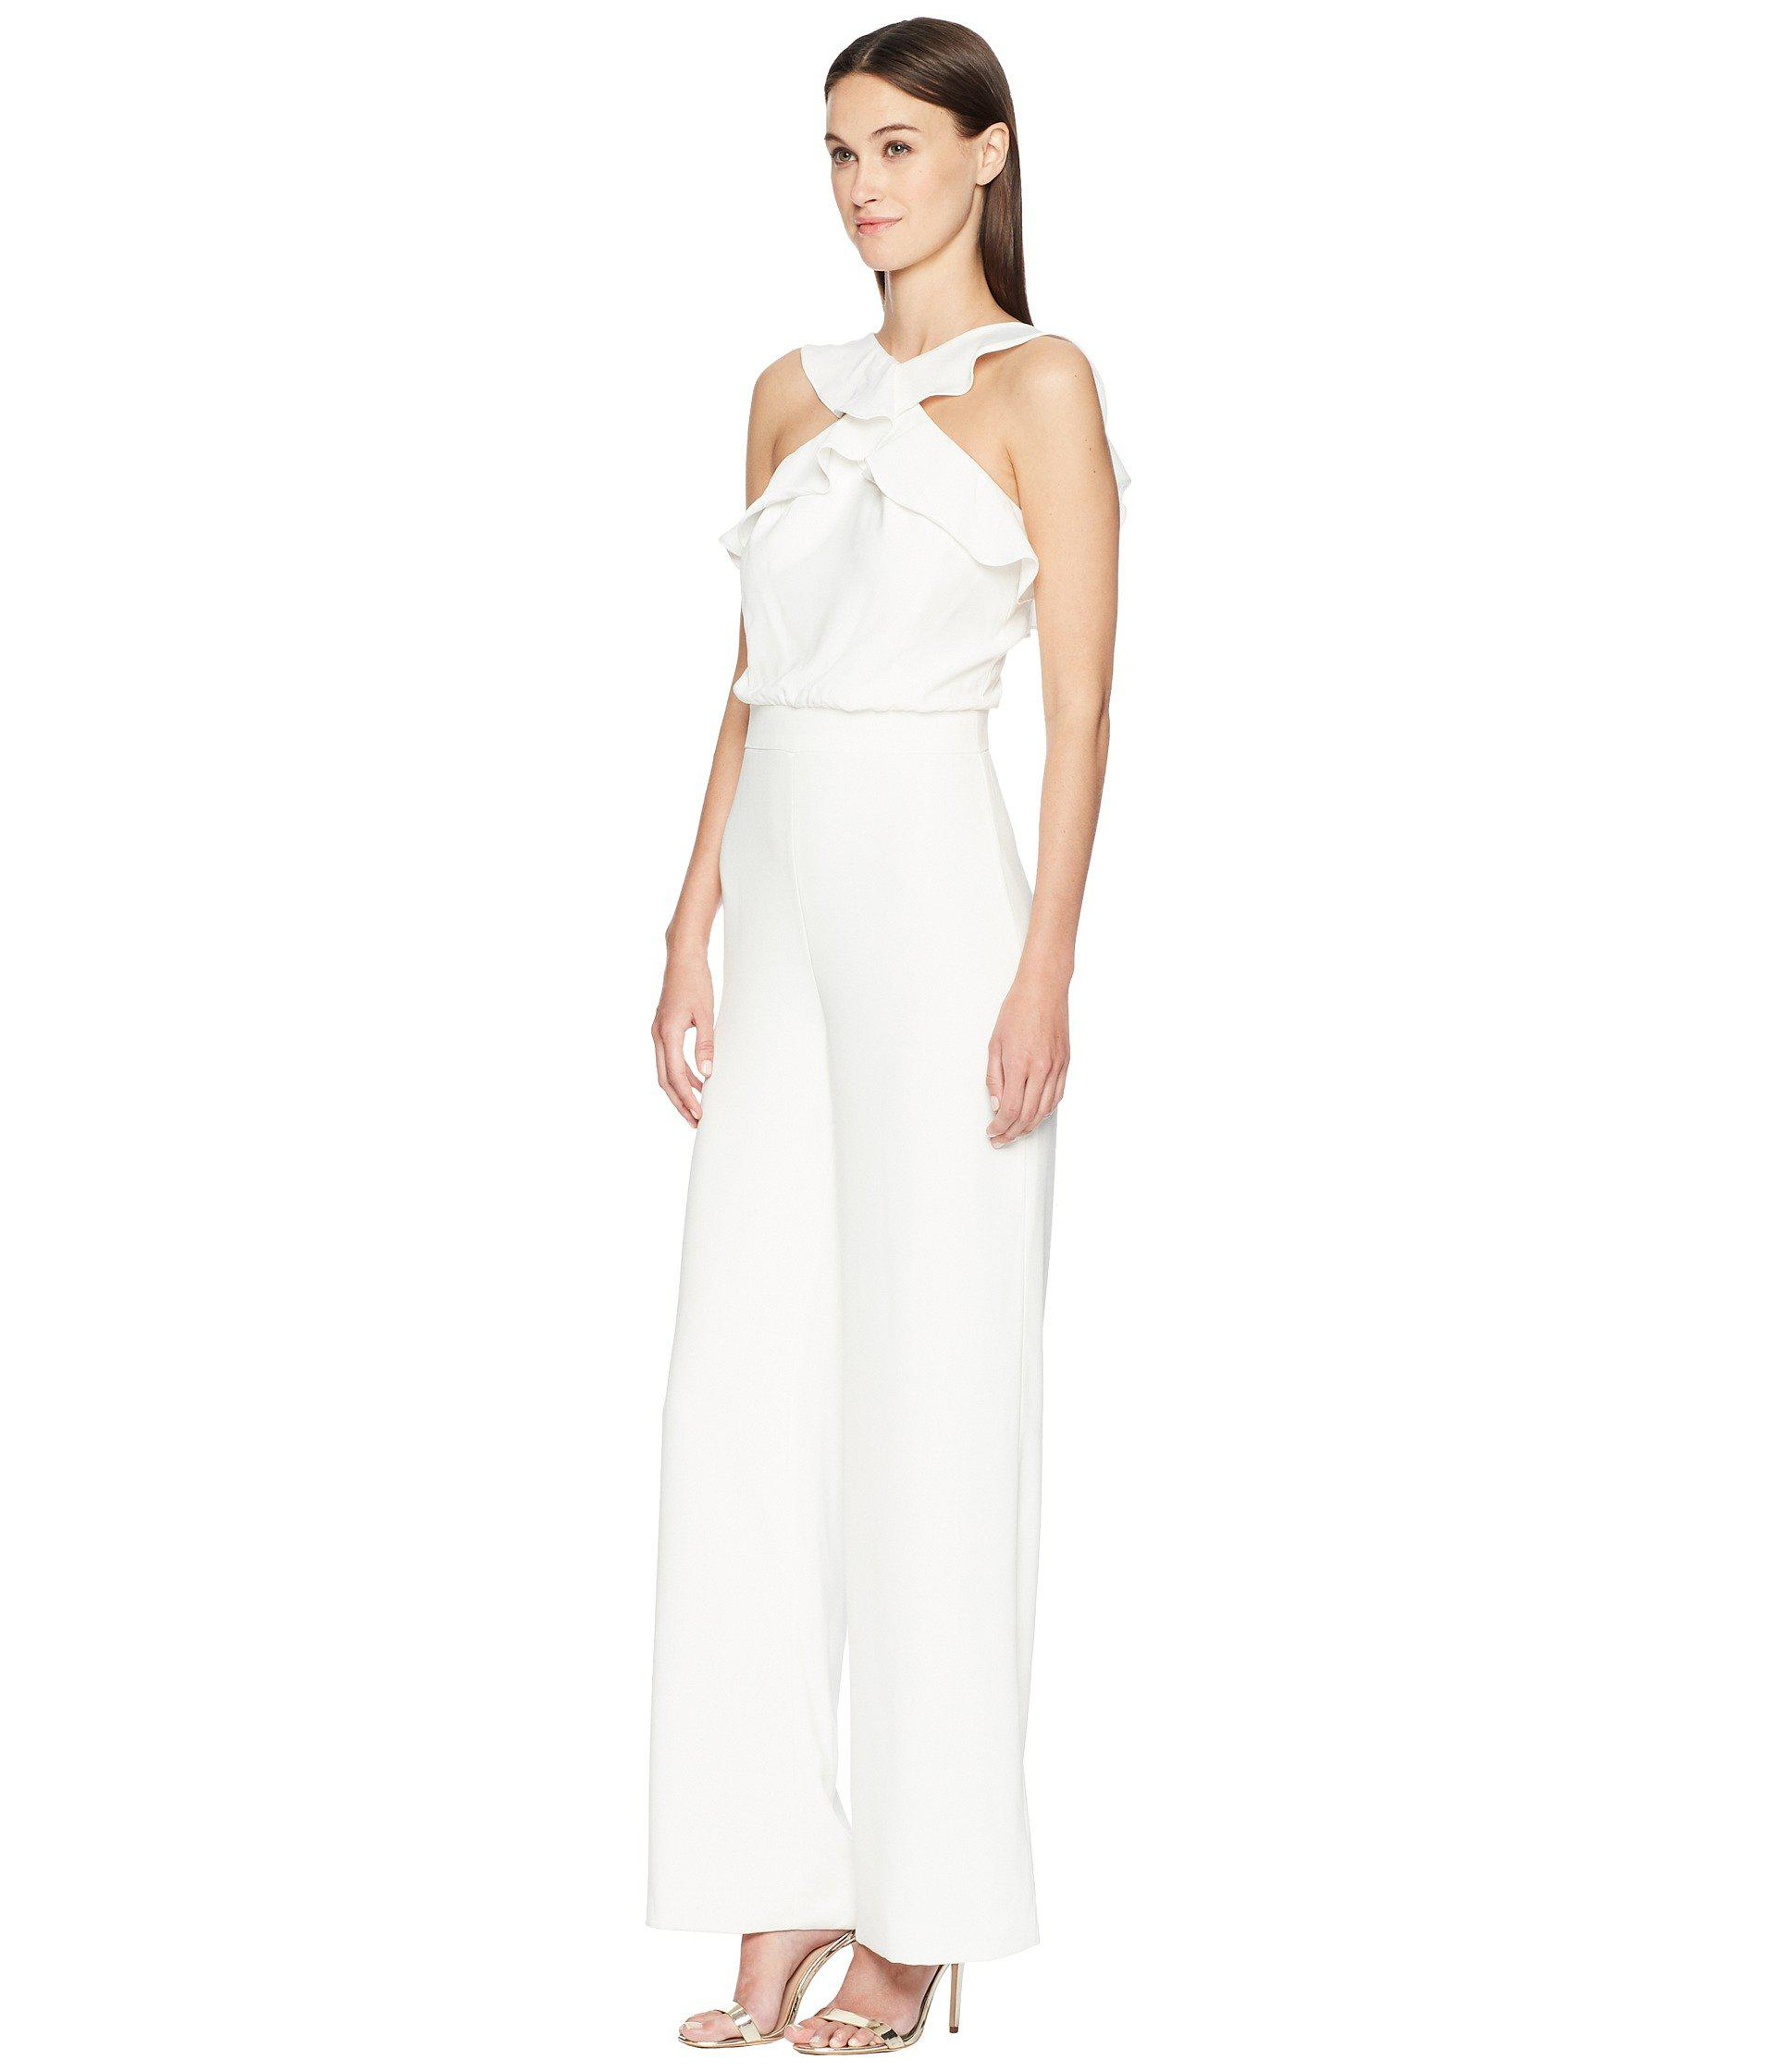 21ced76a254 Lyst - ML Monique Lhuillier Sleeveless Ruffle Jumpsuit (white ...